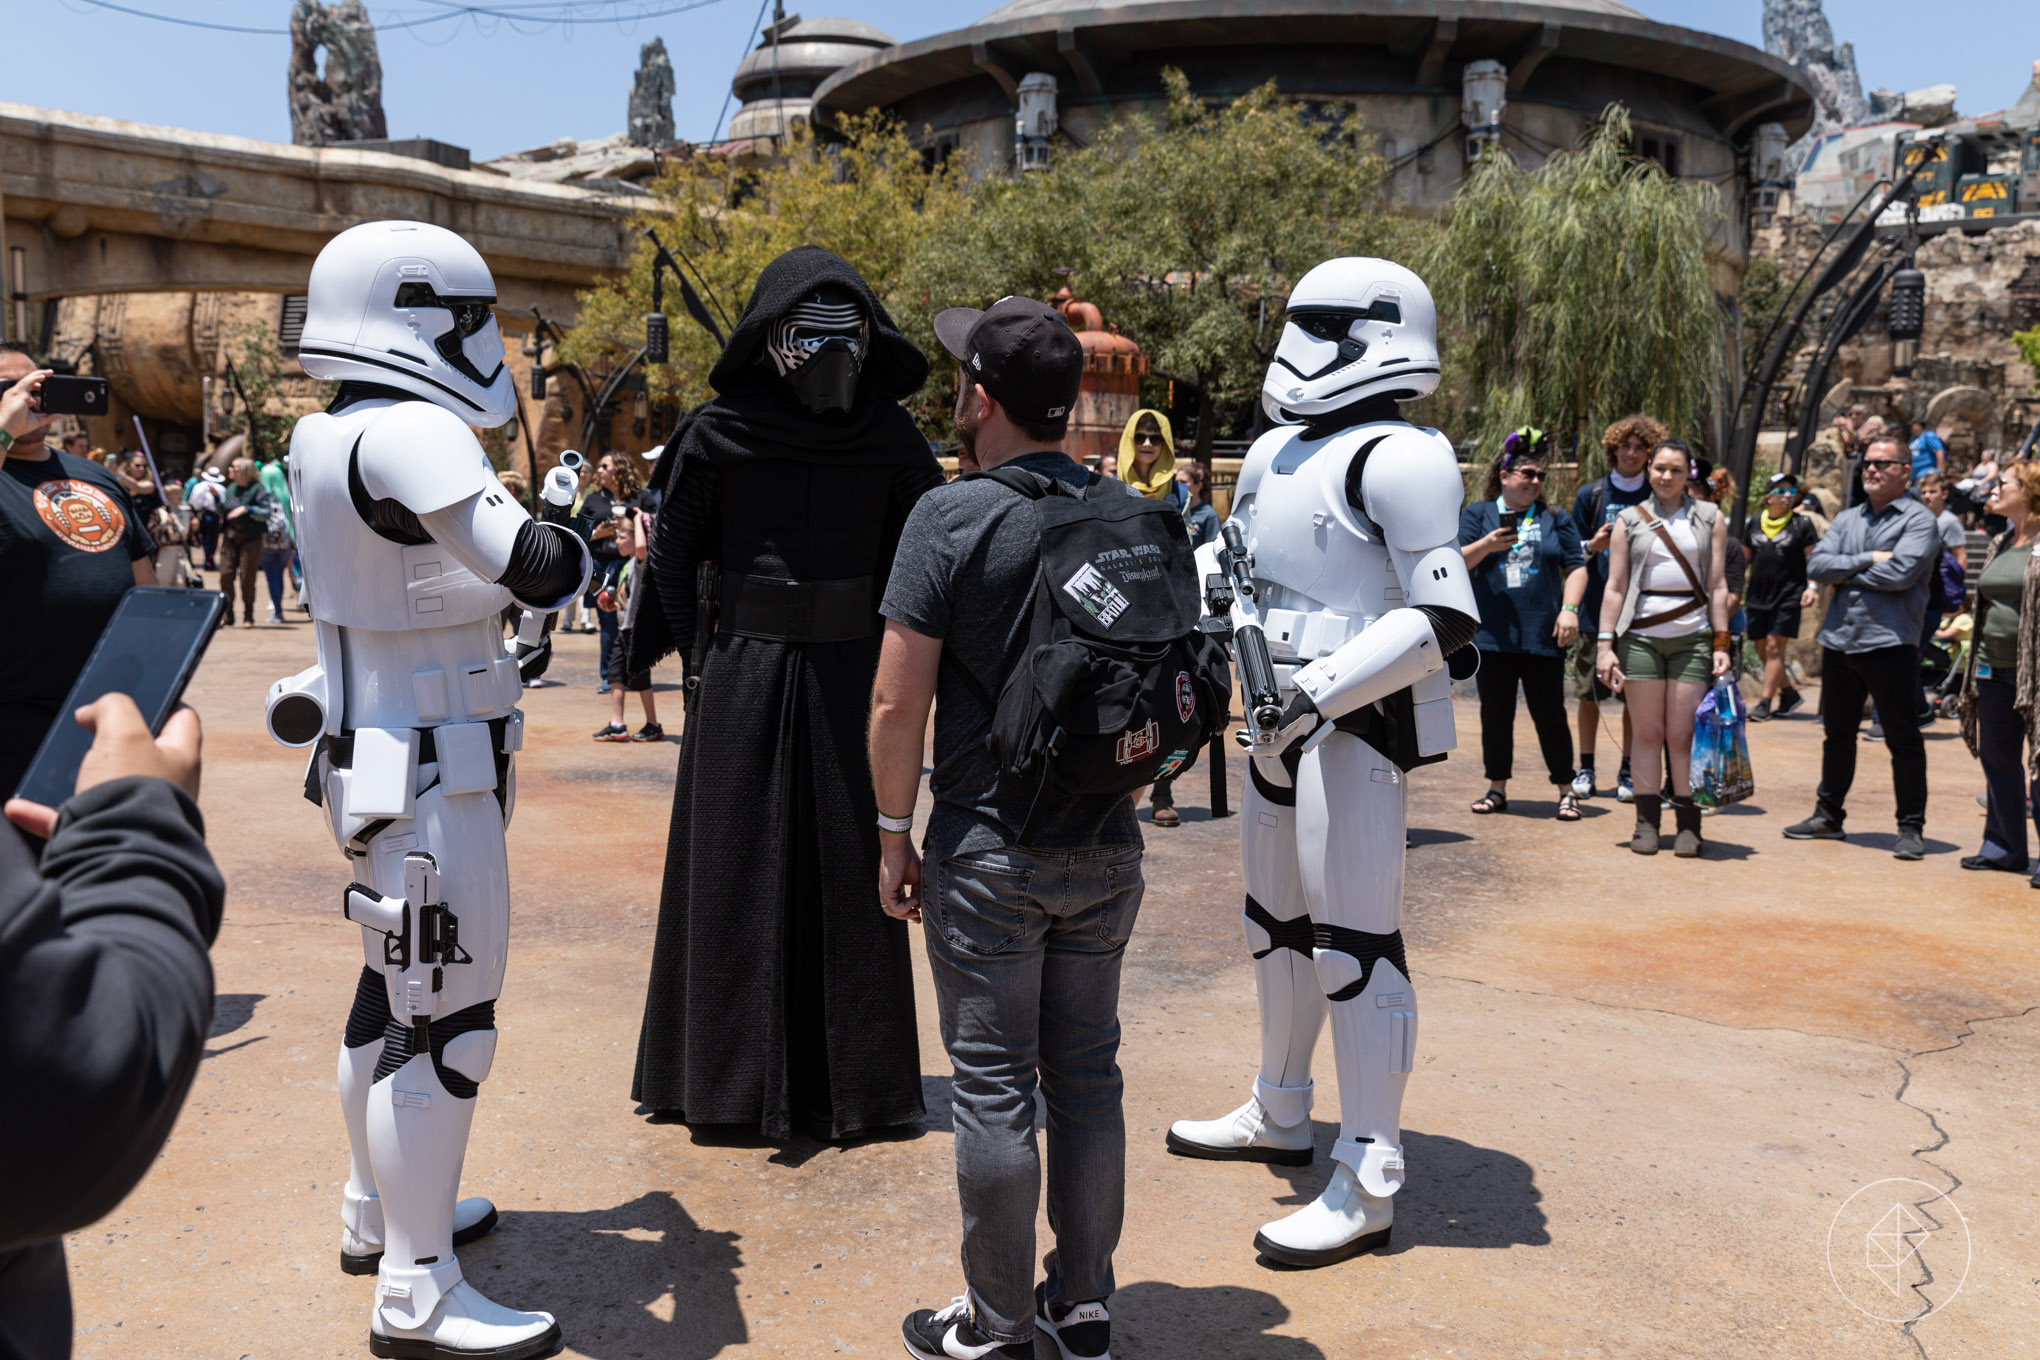 Here's what happened when my 4-hour slot at Galaxy's Edge ran out